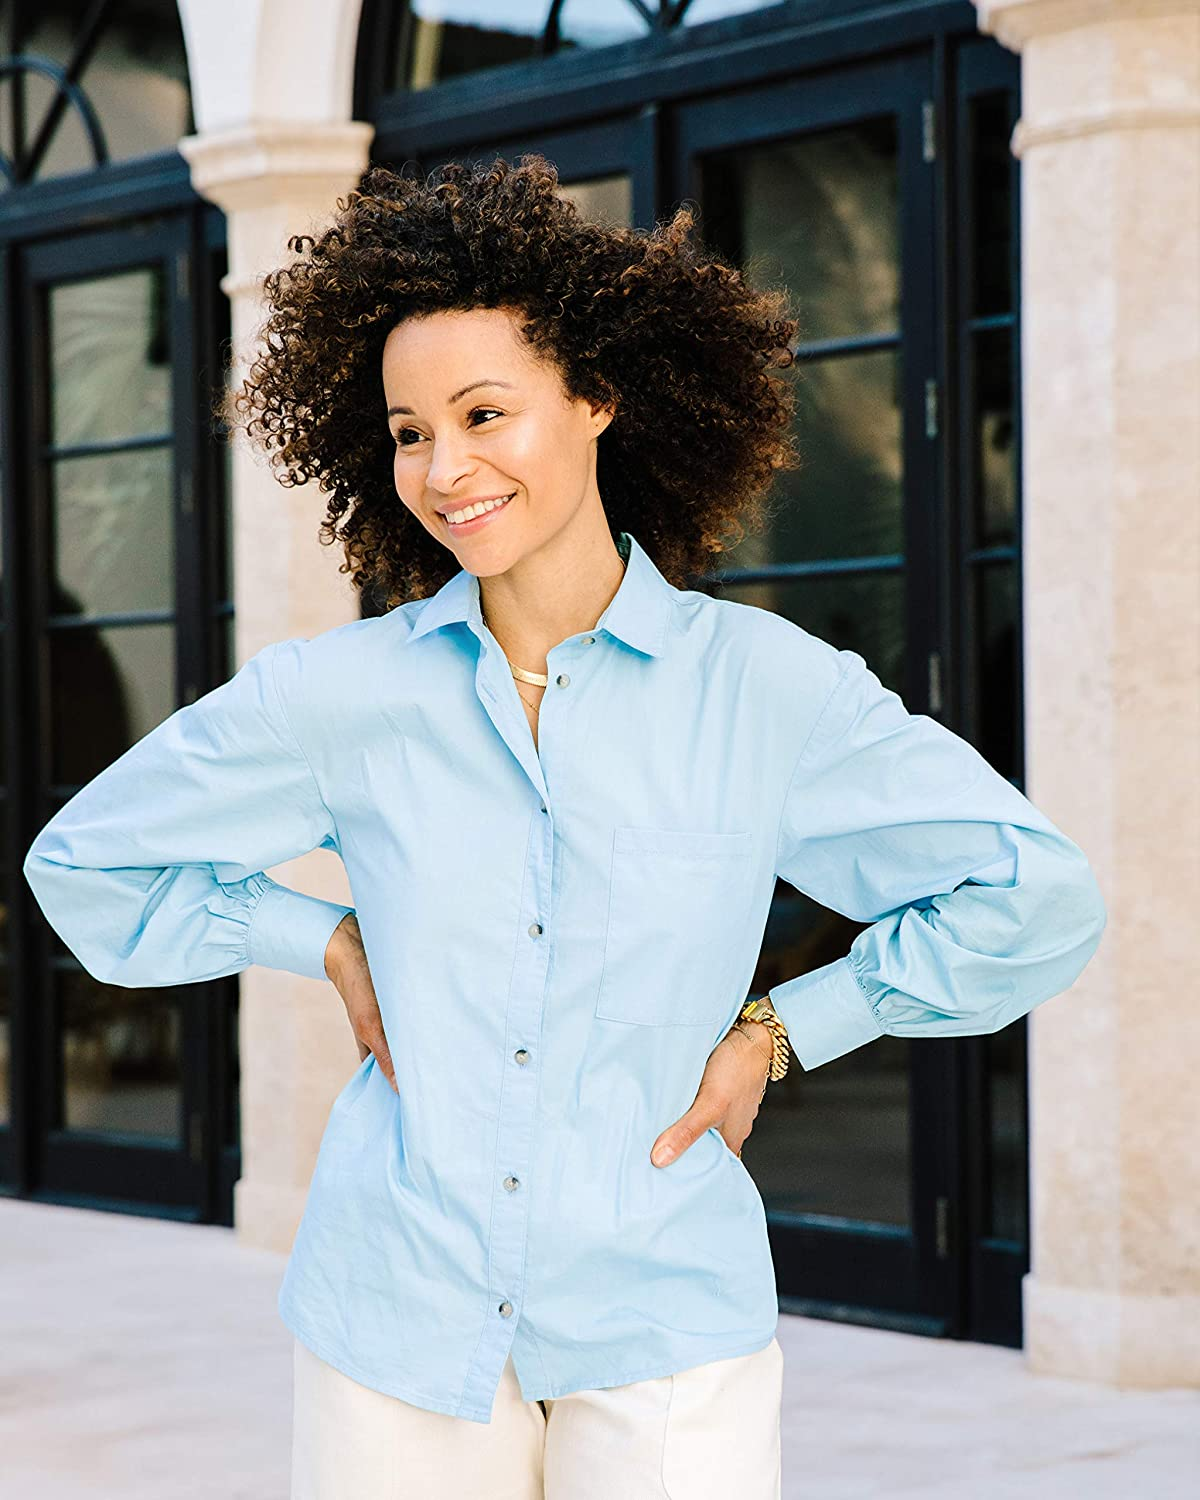 The Drop Women's Airy Blue Button-Down Voluminous Sleeve Shirt by @scoutthecity